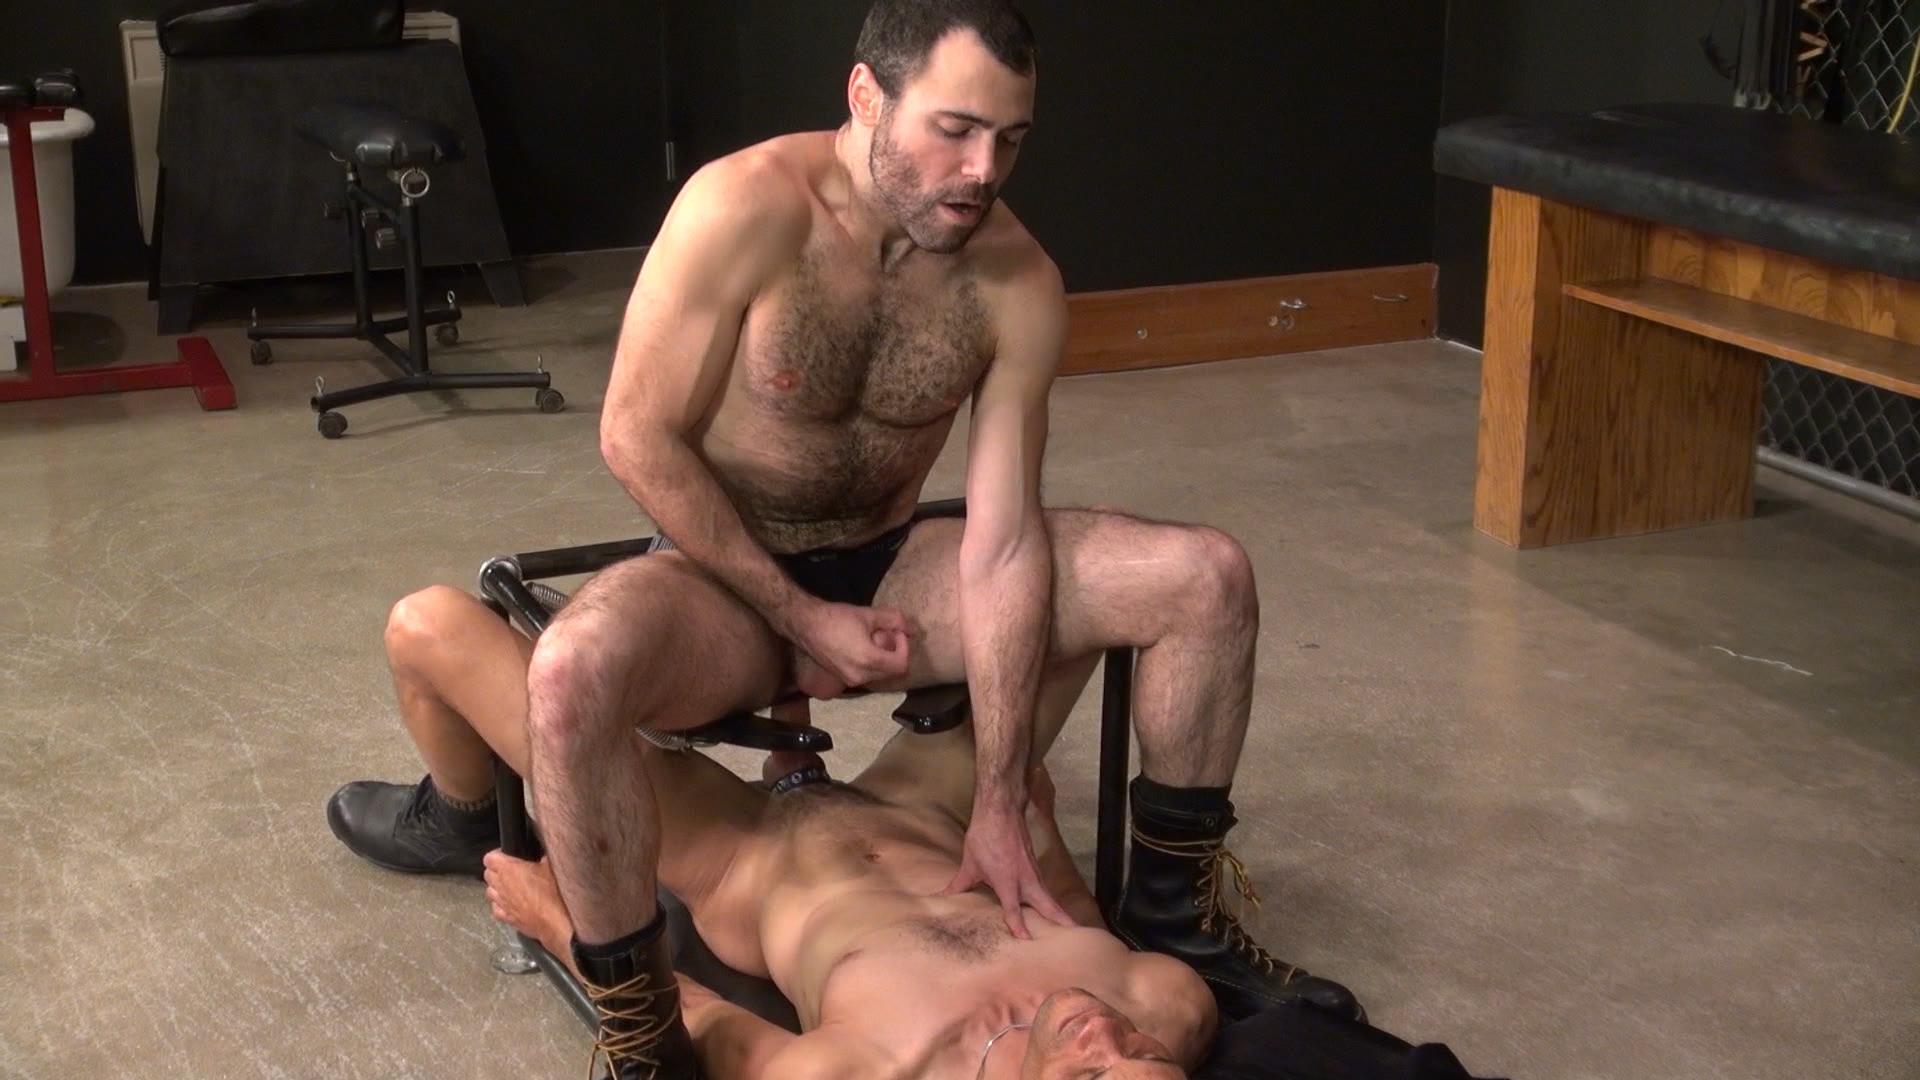 Raw-and-Rough-Dusty-Williams-and-Seth-Patrick-Barebacking-A-Stranger-at-A-Sex-Club-Hairy-Amateur-Gay-Porn-08 Barebacking A Hairy Guy At A Gay Sex Club